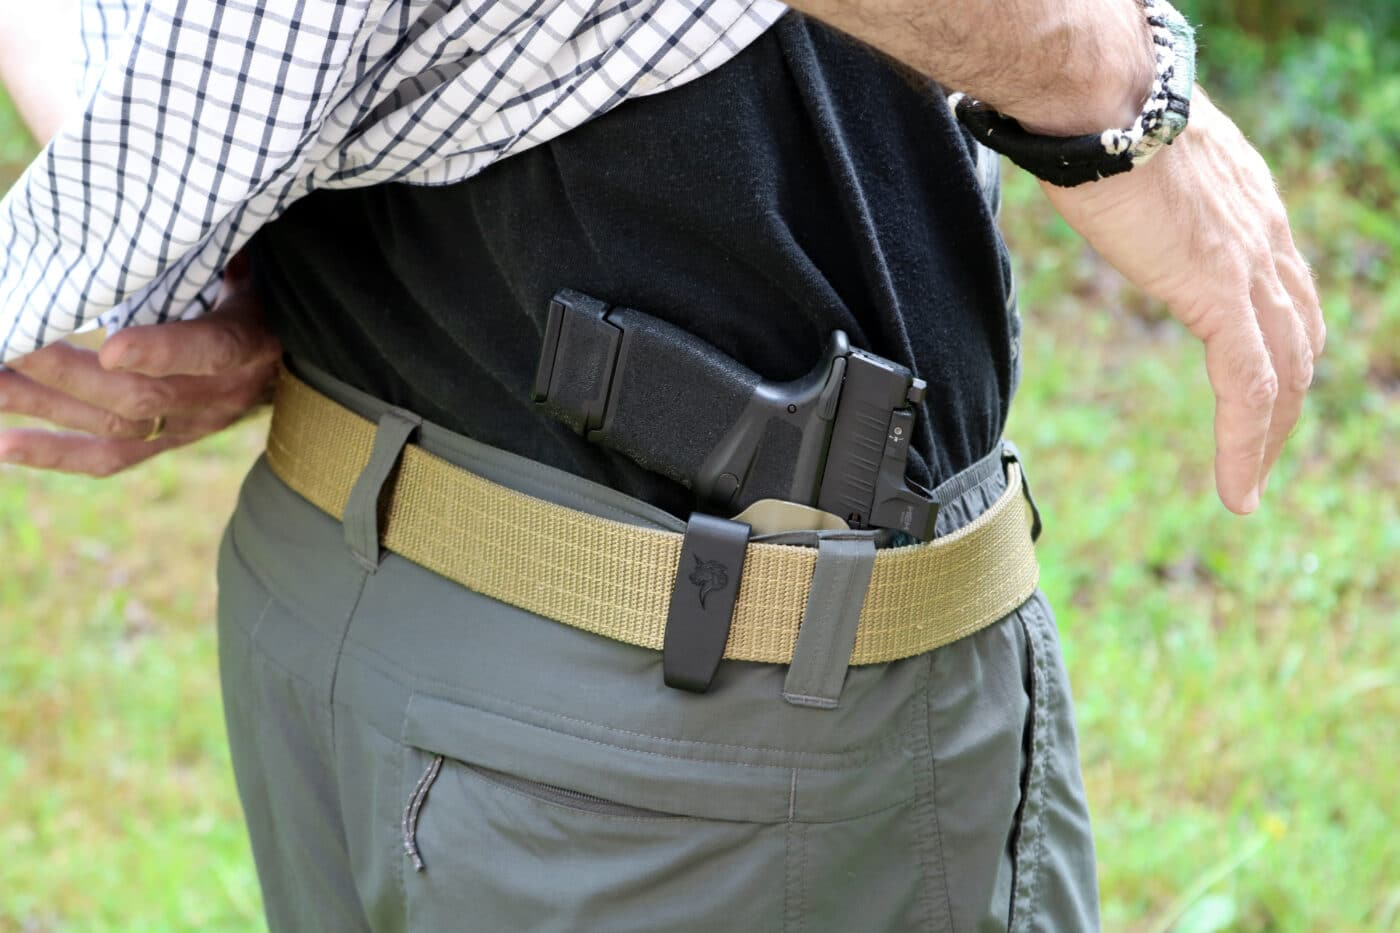 Man showing EDC holster by DeSantis  for Springfield Hellcat